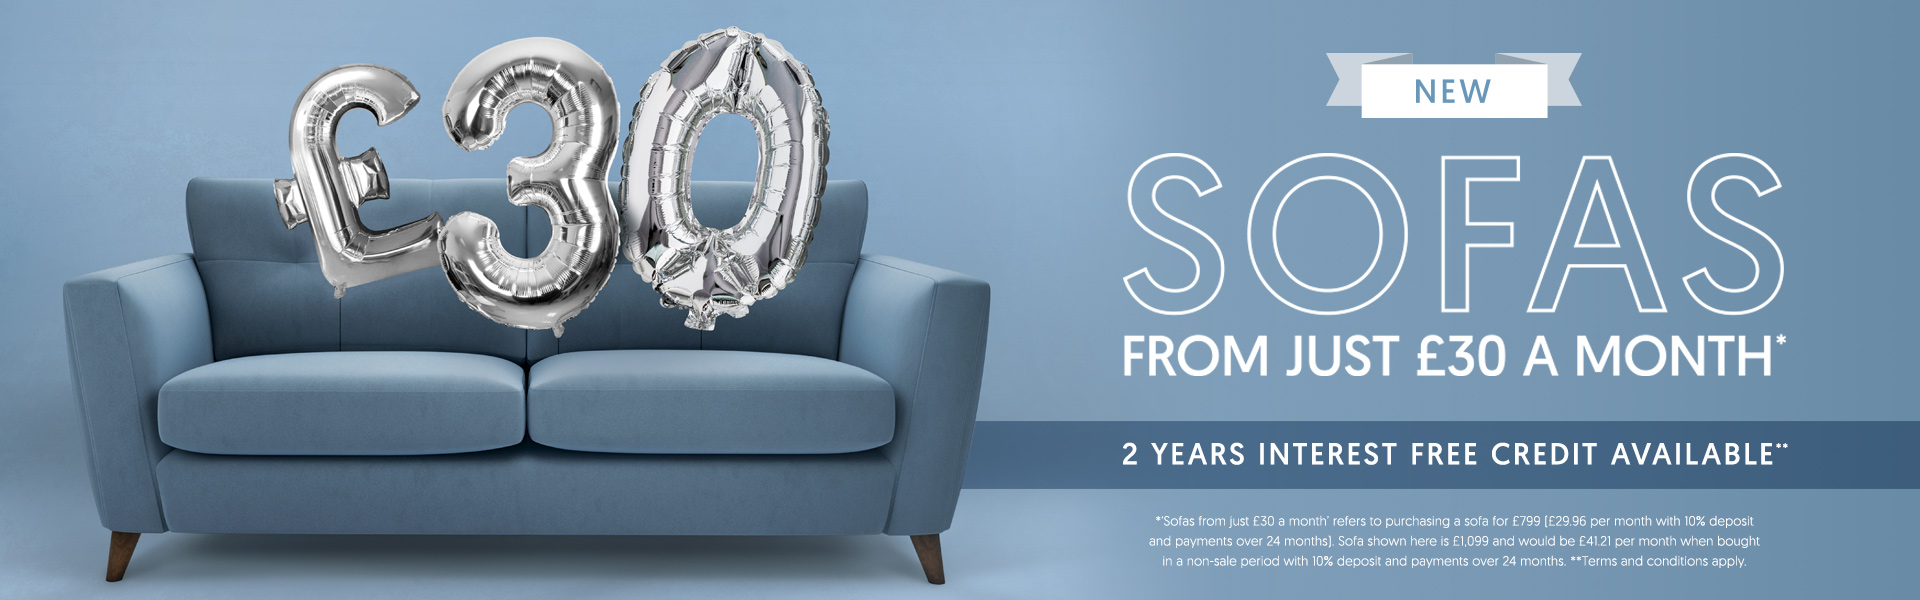 NEW: Sofas from just £34 a month*. 2 years interest free credit available.